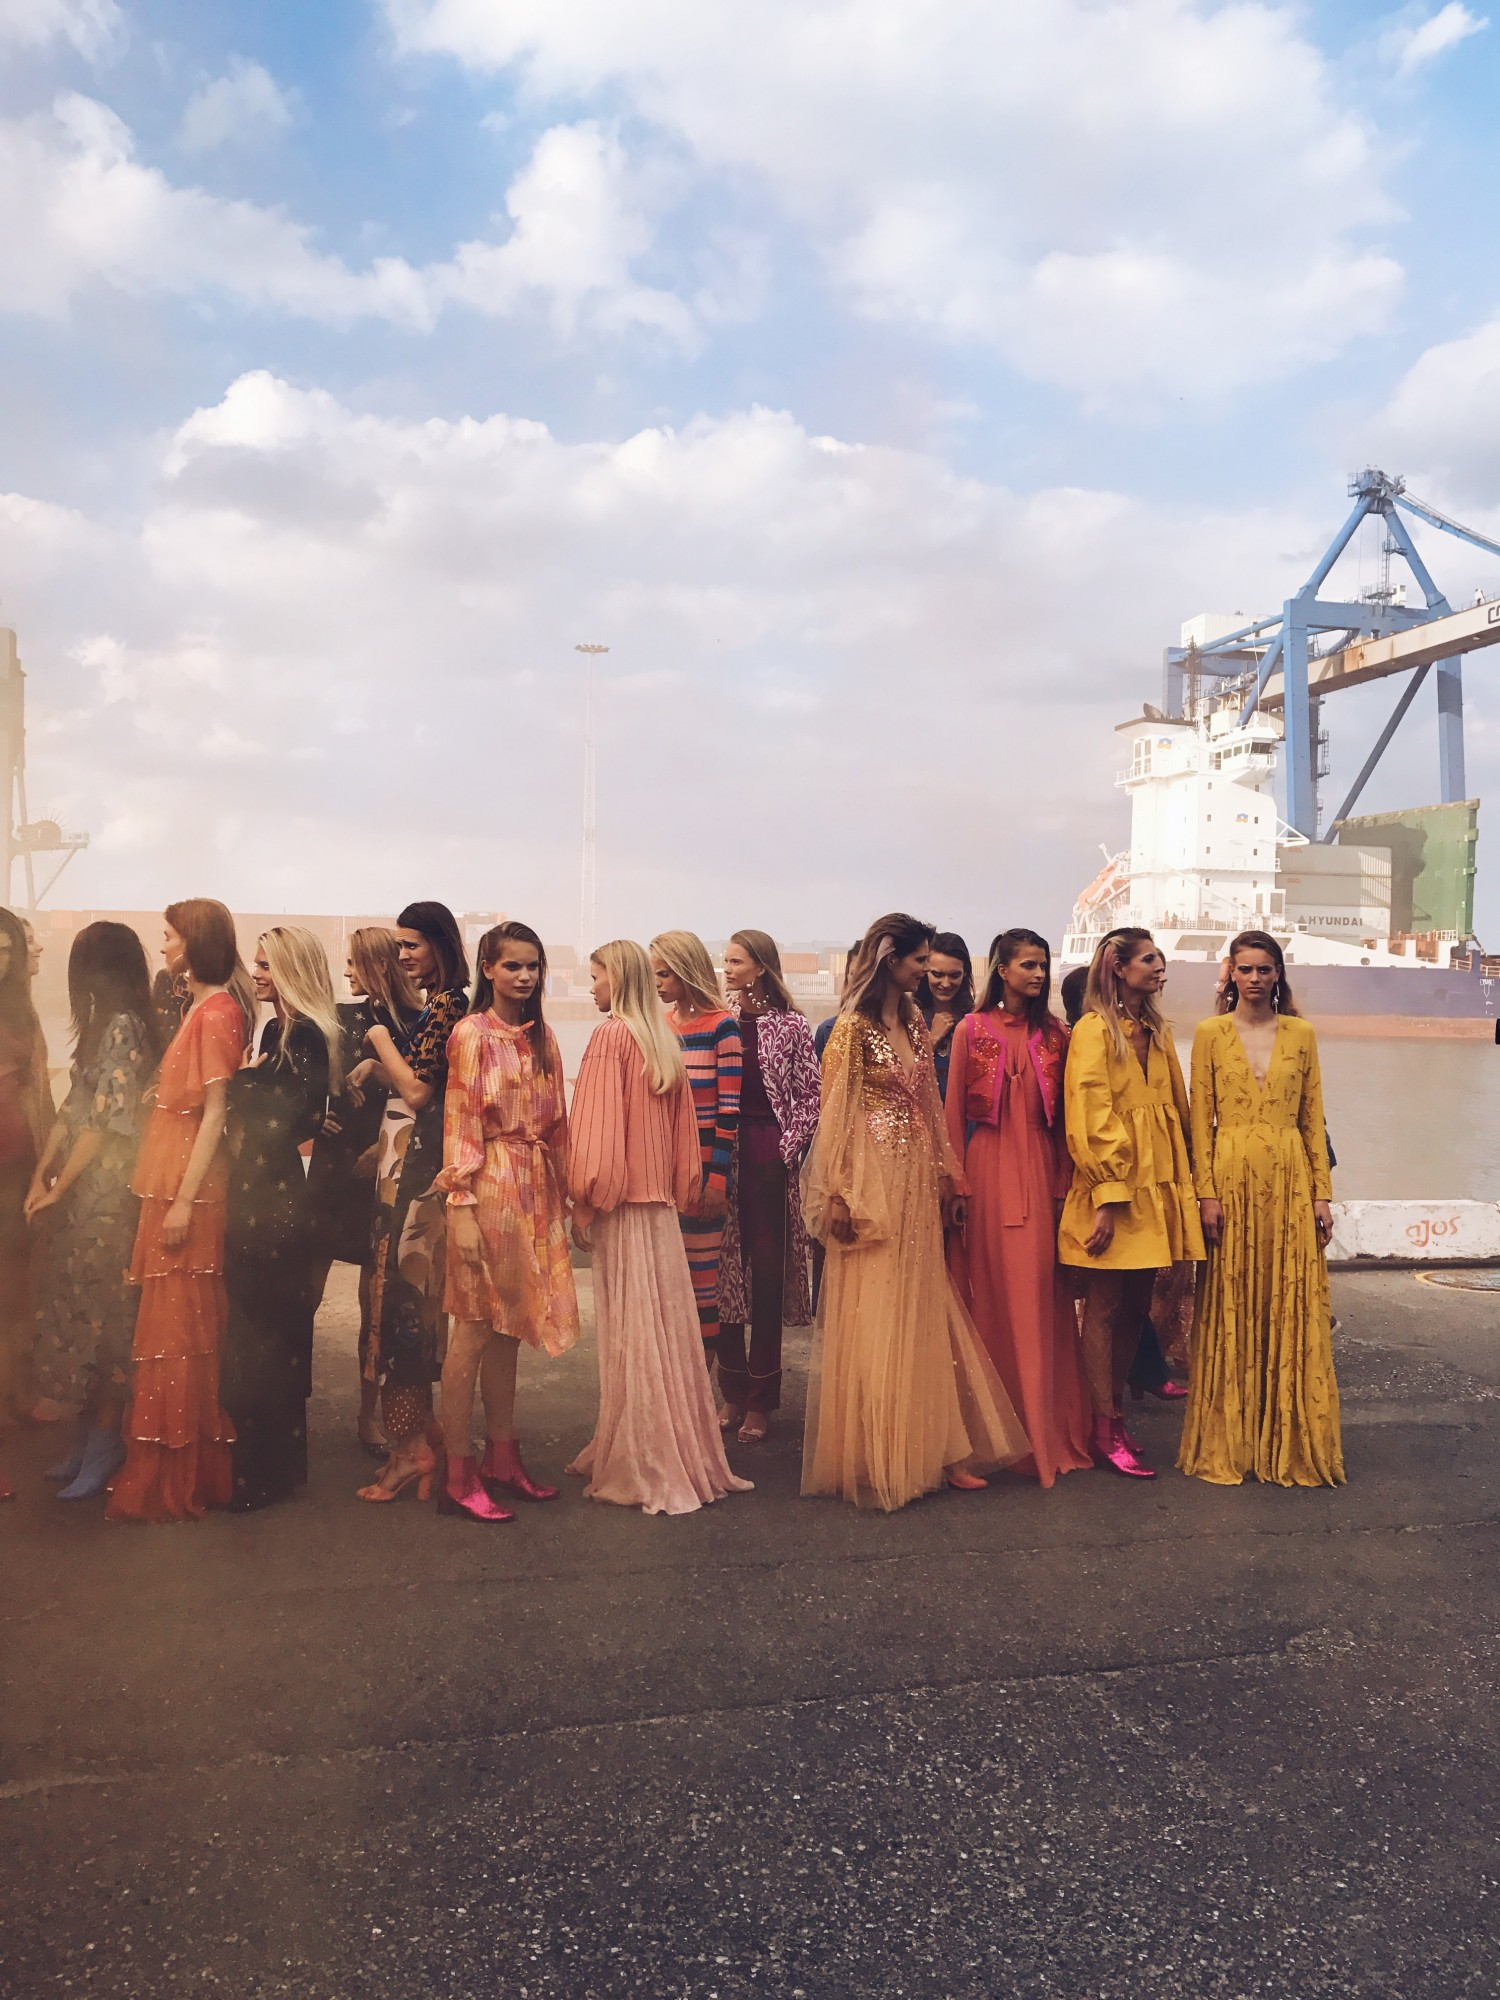 Rockpaperdresses, cathrine widunok wichmand, stine goya ss18, 10 years, nordhavn